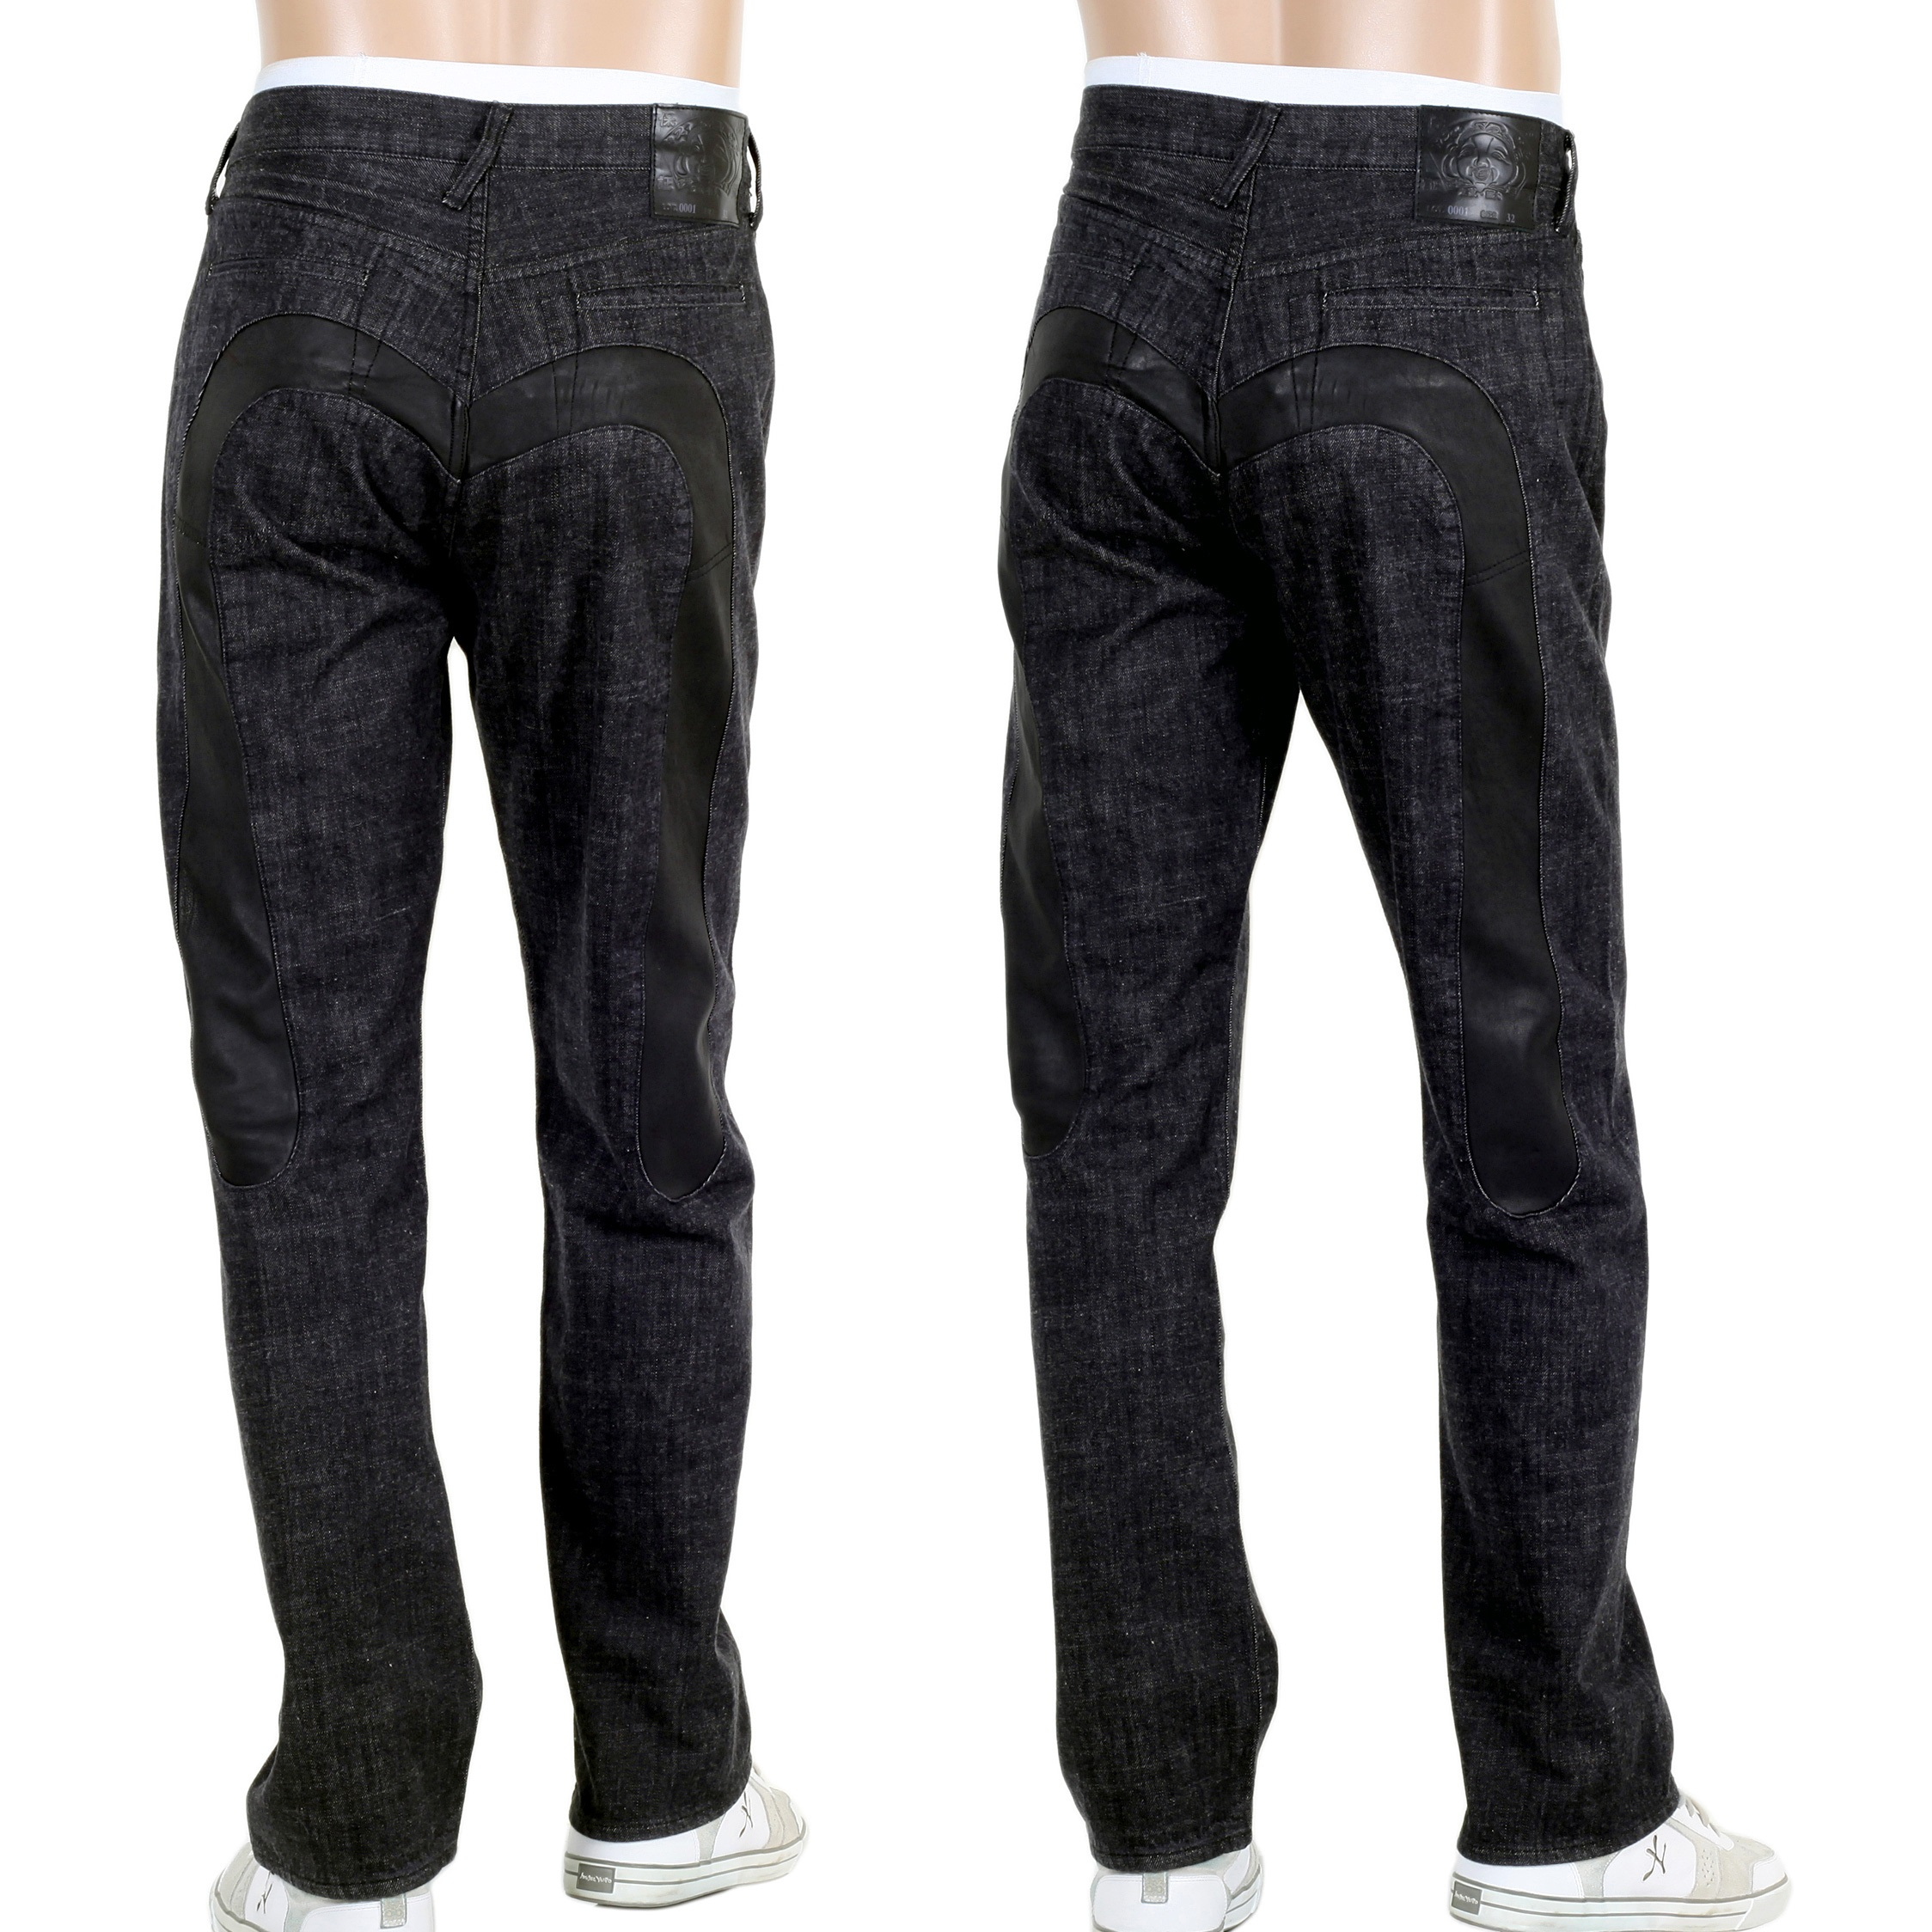 Black Jeans from Evisu